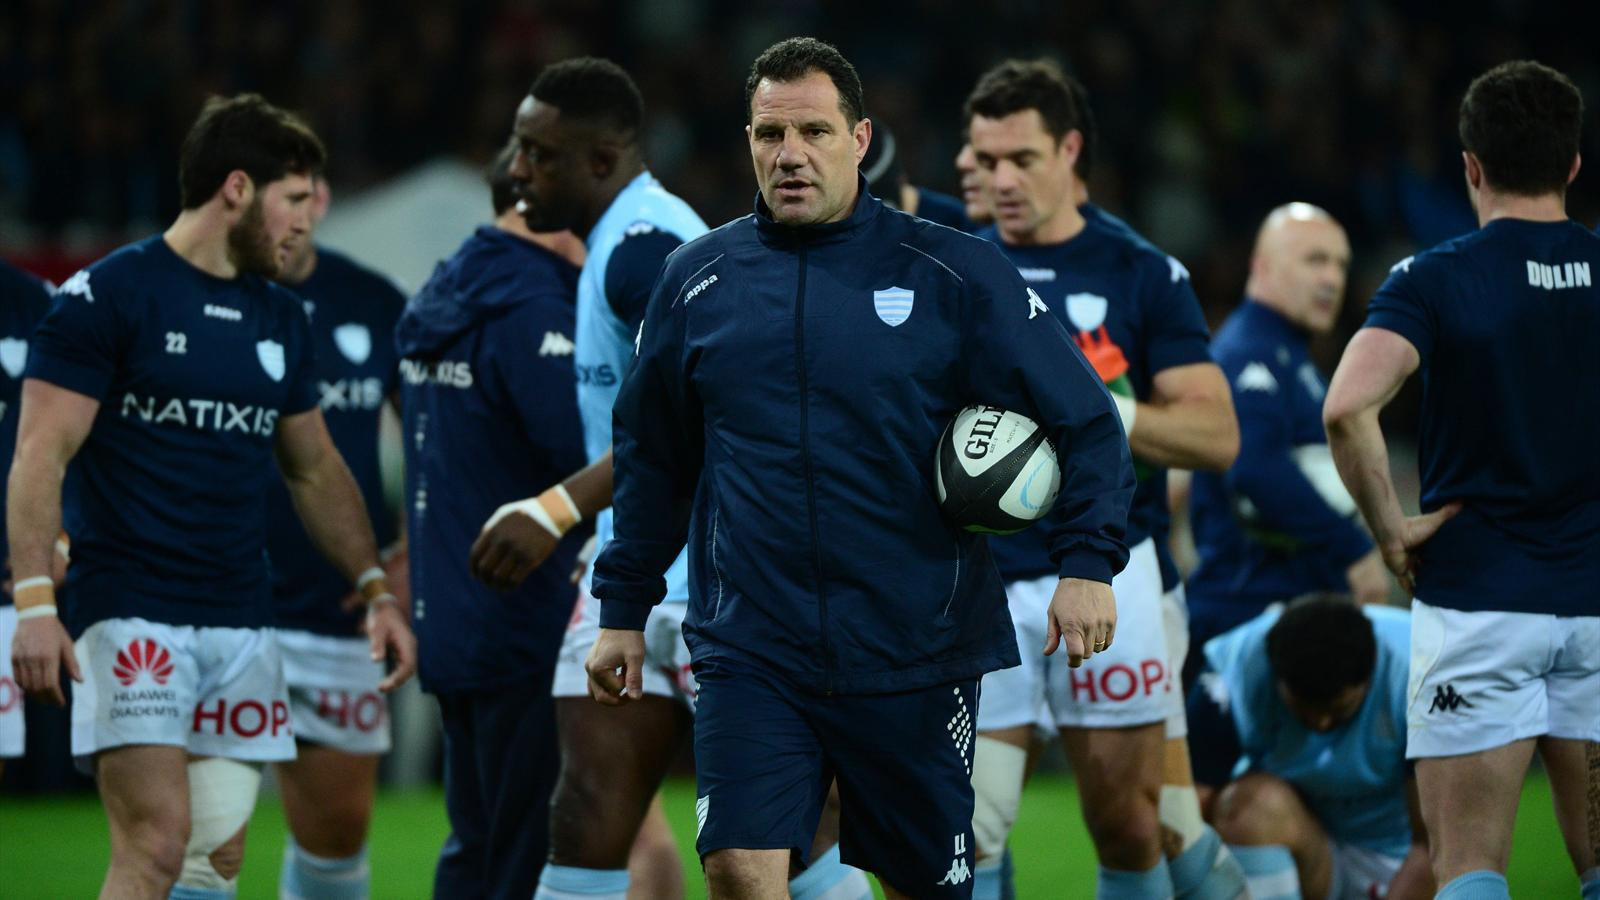 Laurent Labit (Racing 92) - 26 mars 2016